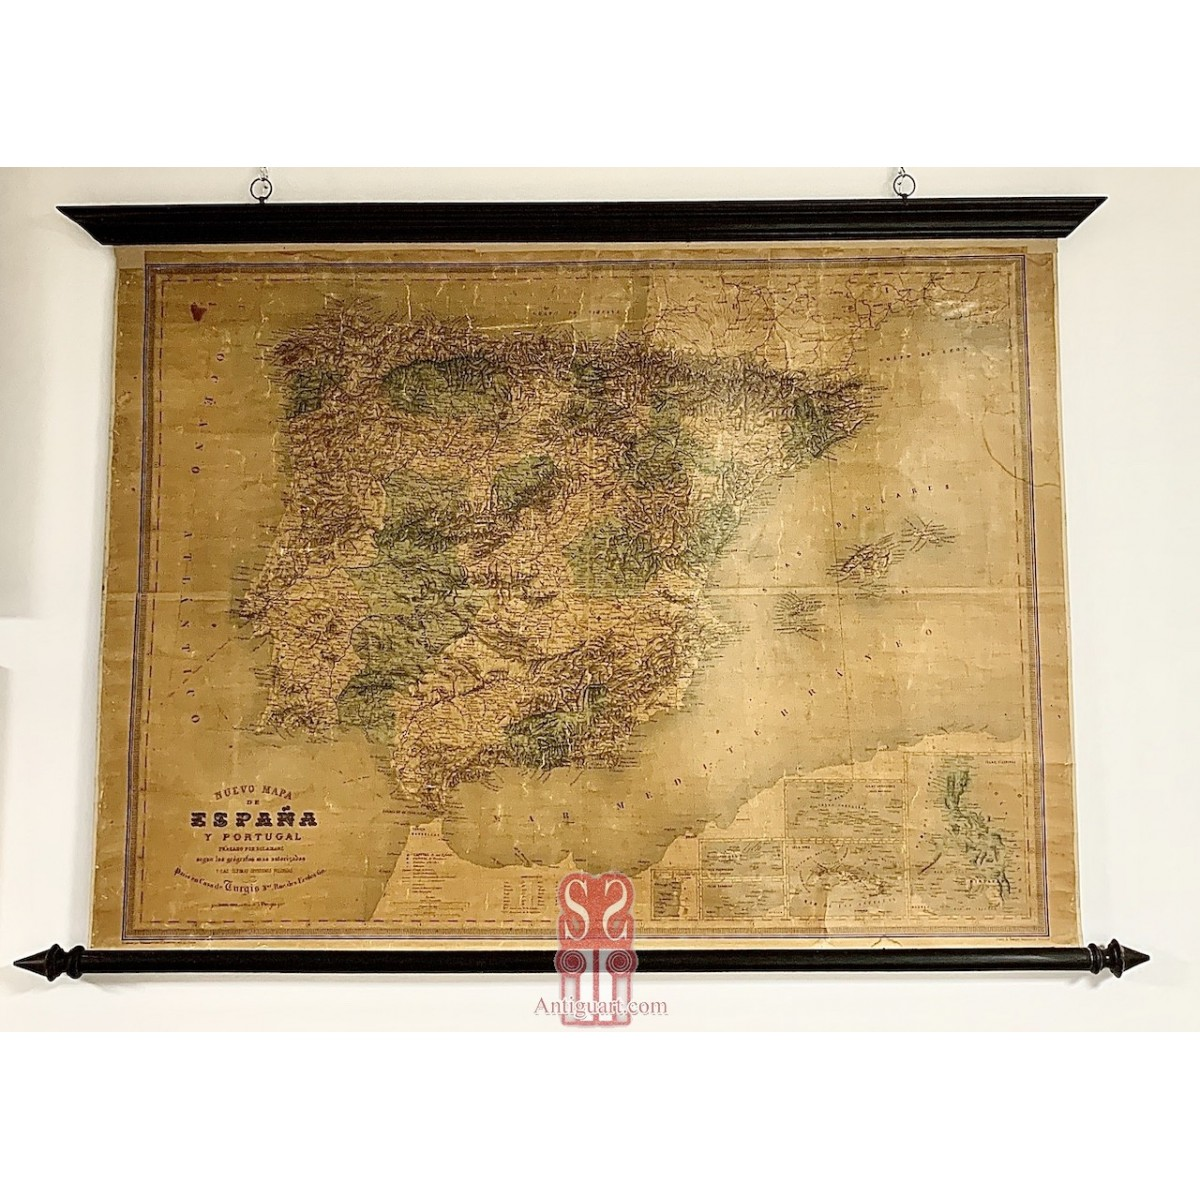 19th century map of Spain